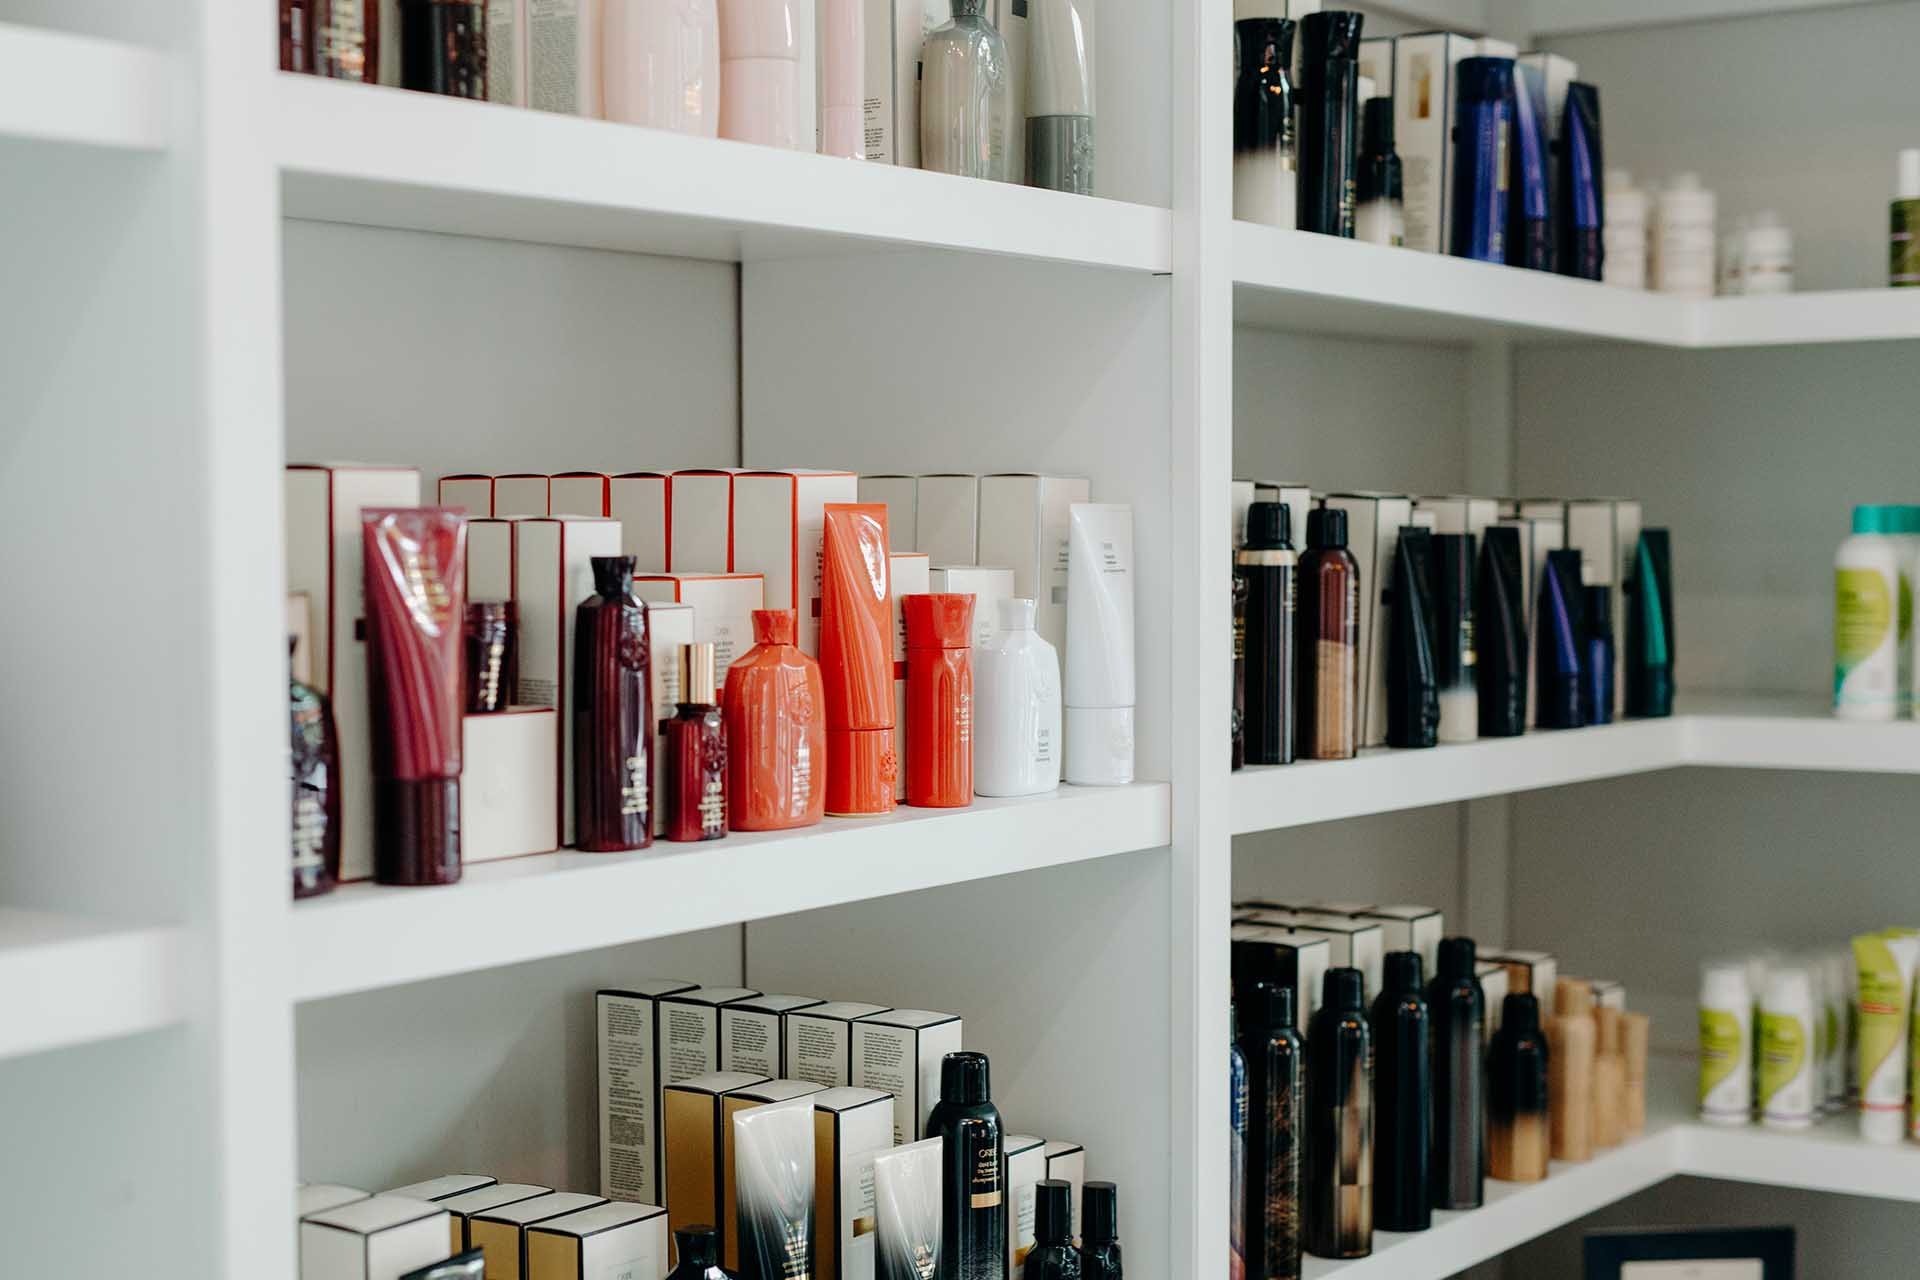 Shelf of retail hair products